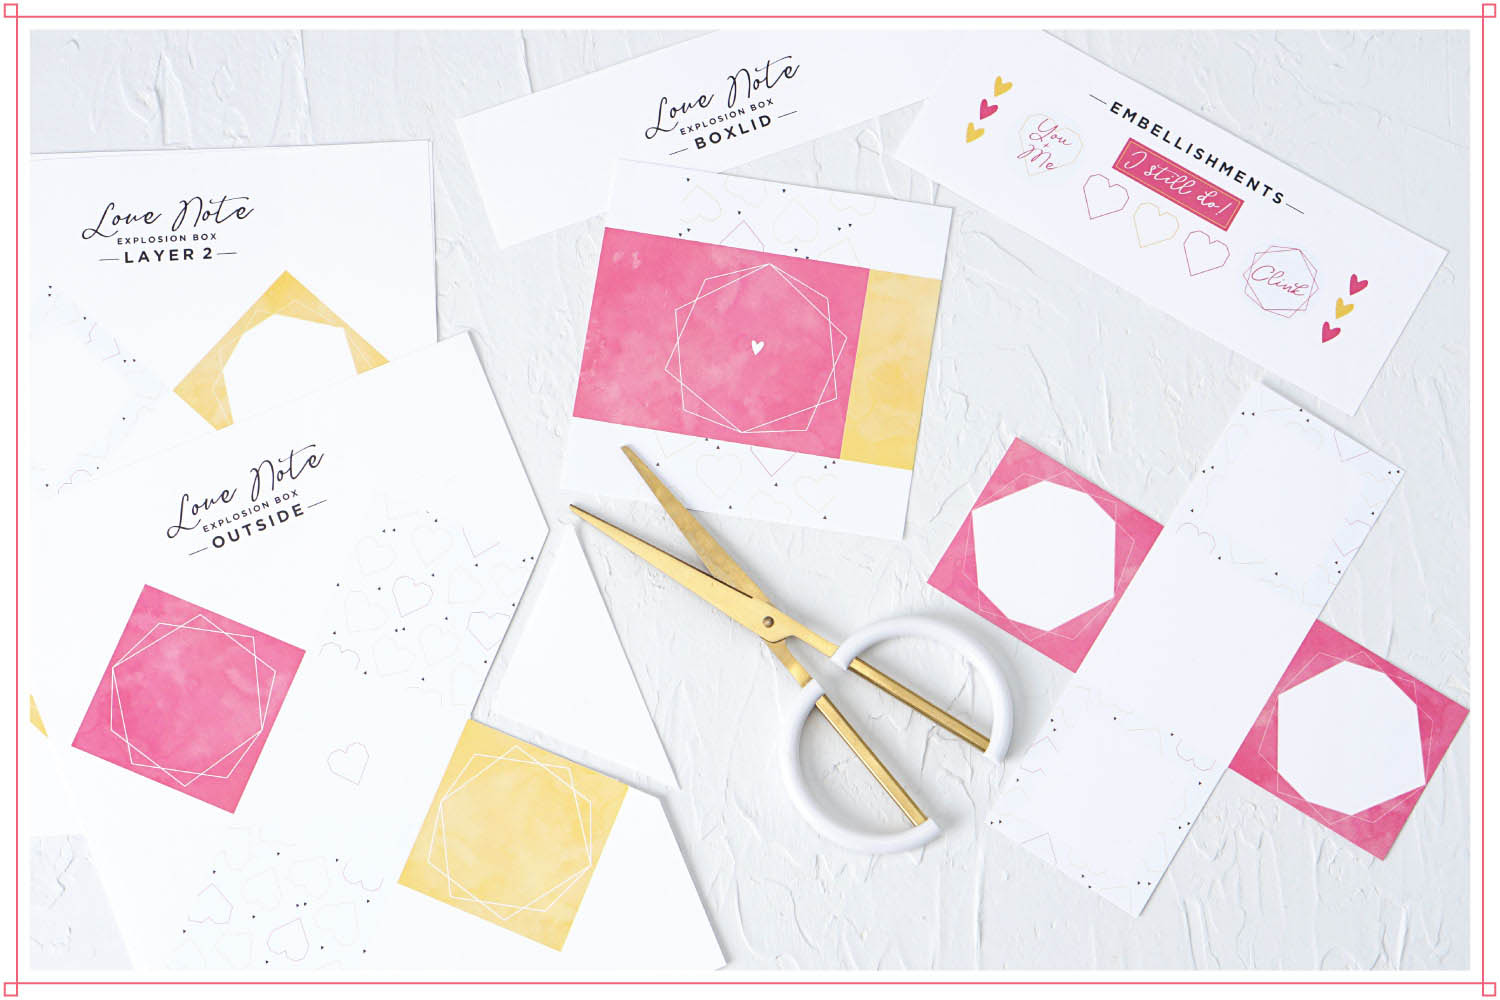 Cutting out free printed 3d Love Note explosion box using scissors